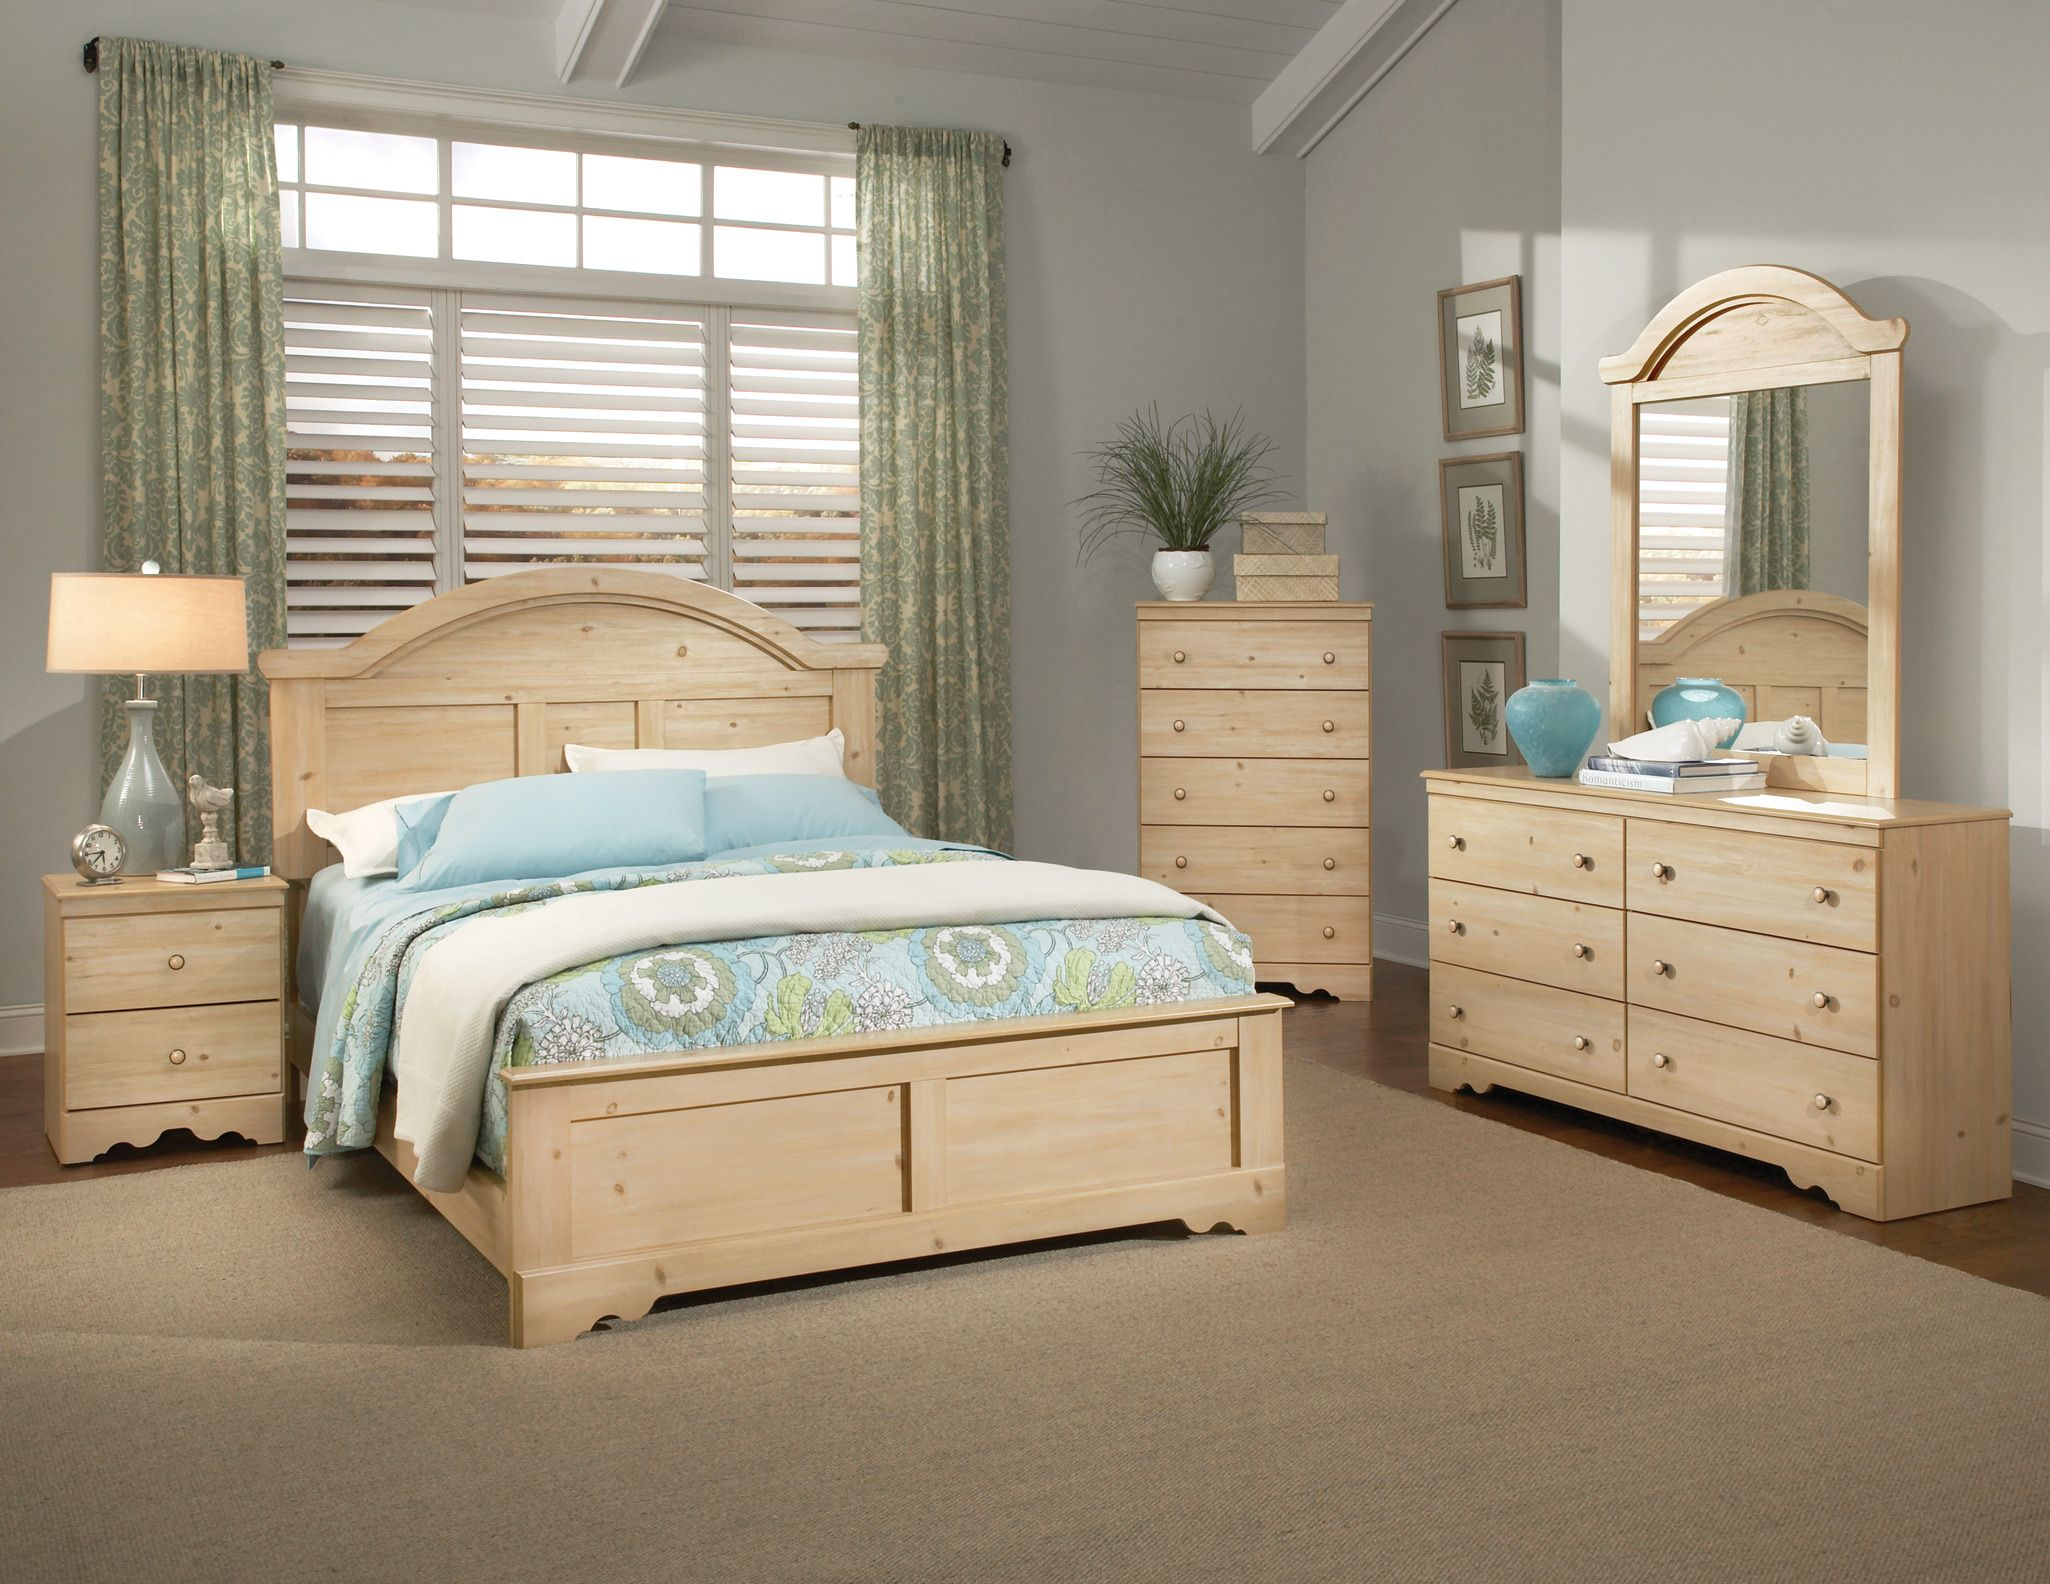 bedroom furniture sets pine | design ideas 2017-2018 | Pinterest ...